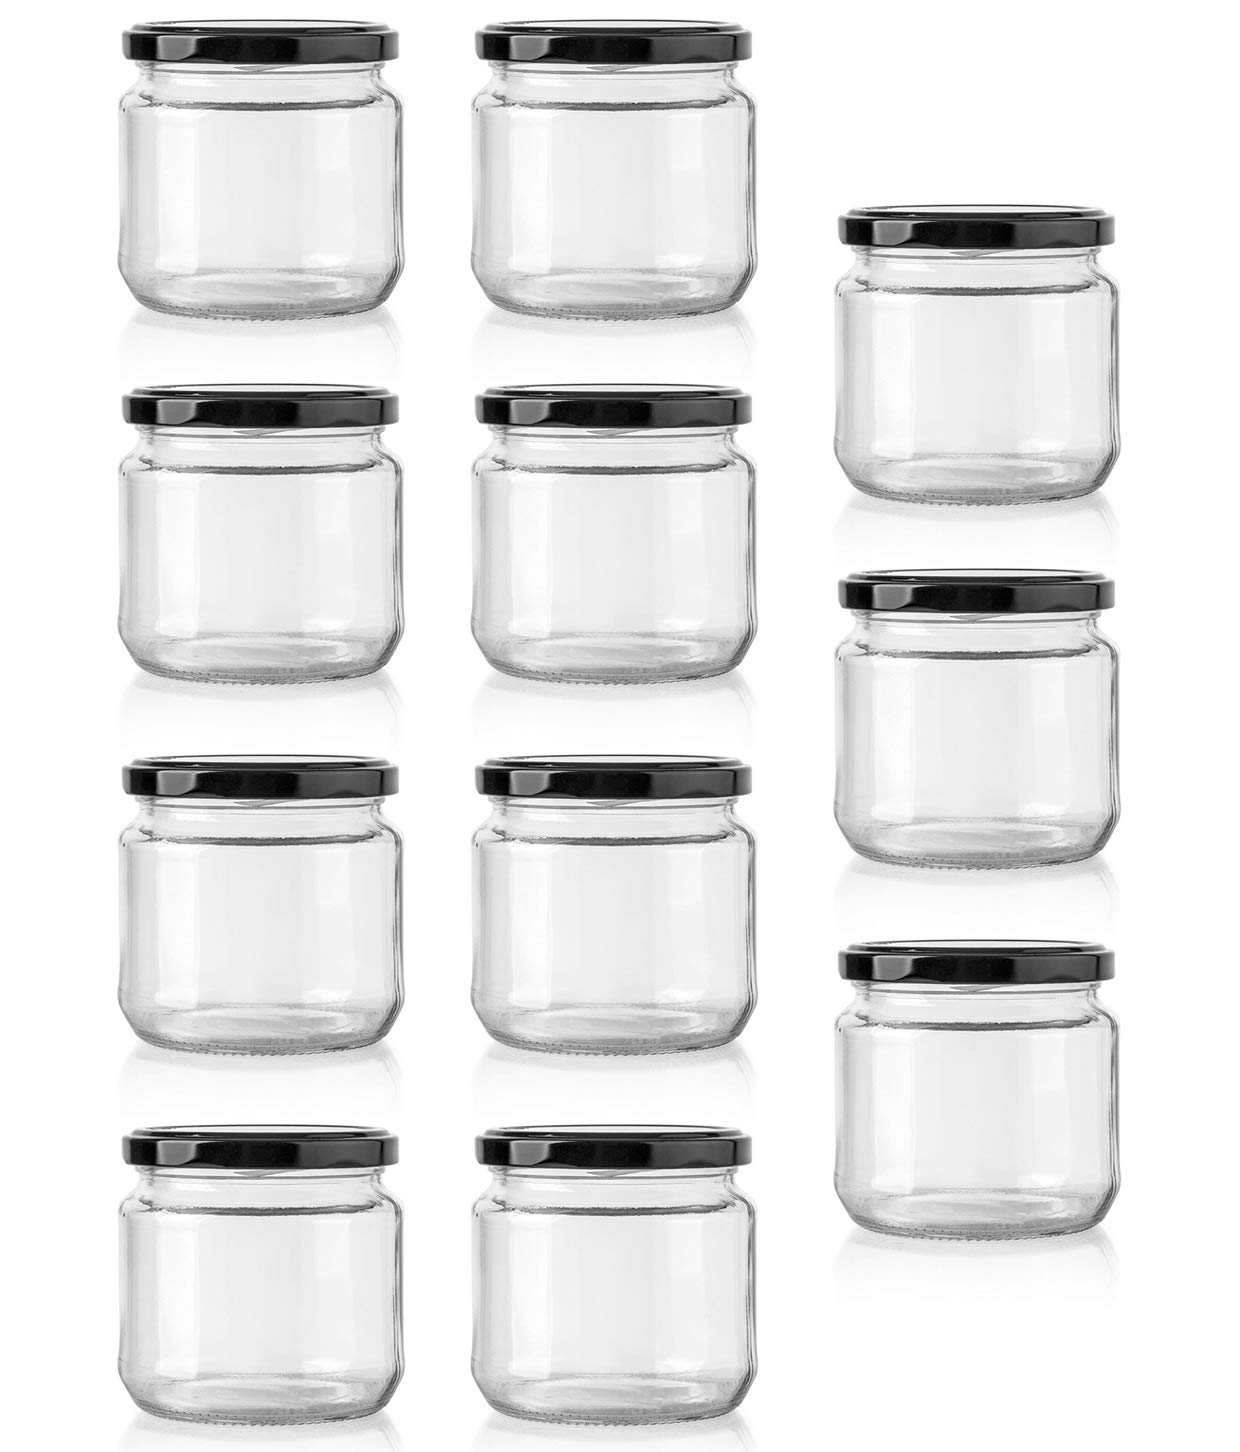 Superbazaar Round Glass Jar With 190 Ml Capacity With Metal Rust Proof Black Color Airtight Cap (set Of 11)- Transparent